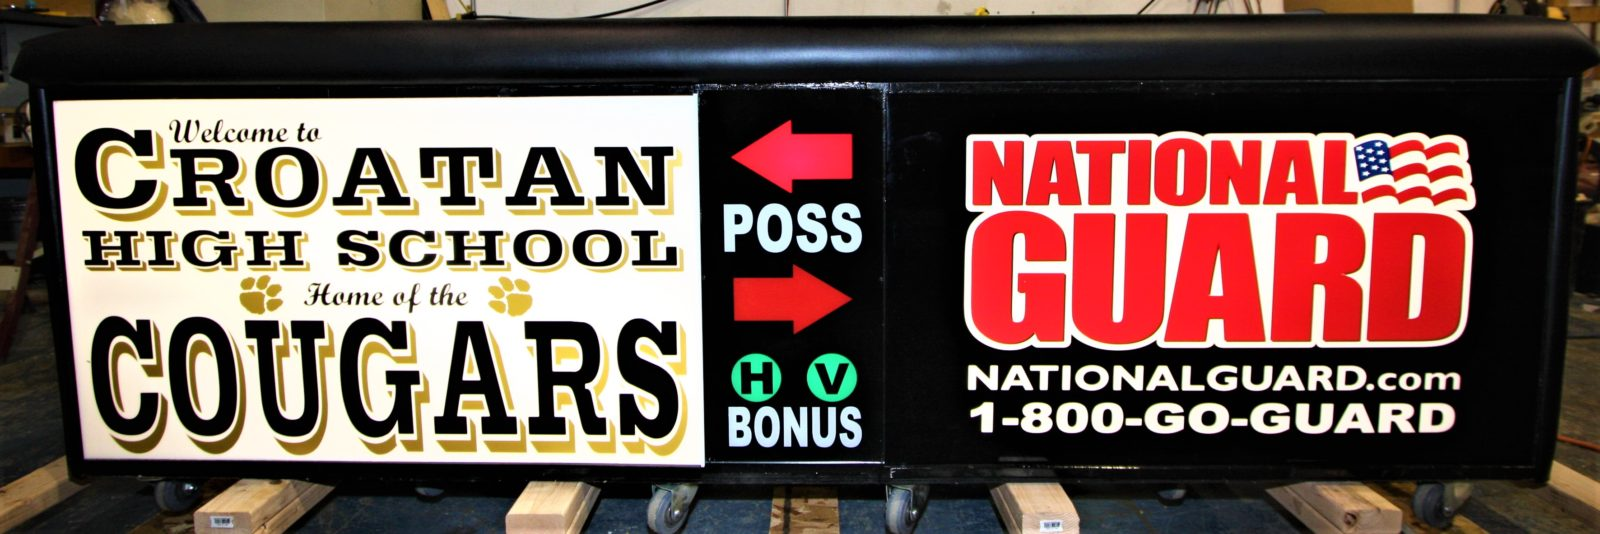 Croation high school scoring table North Carolina Army National Guard NCARNG